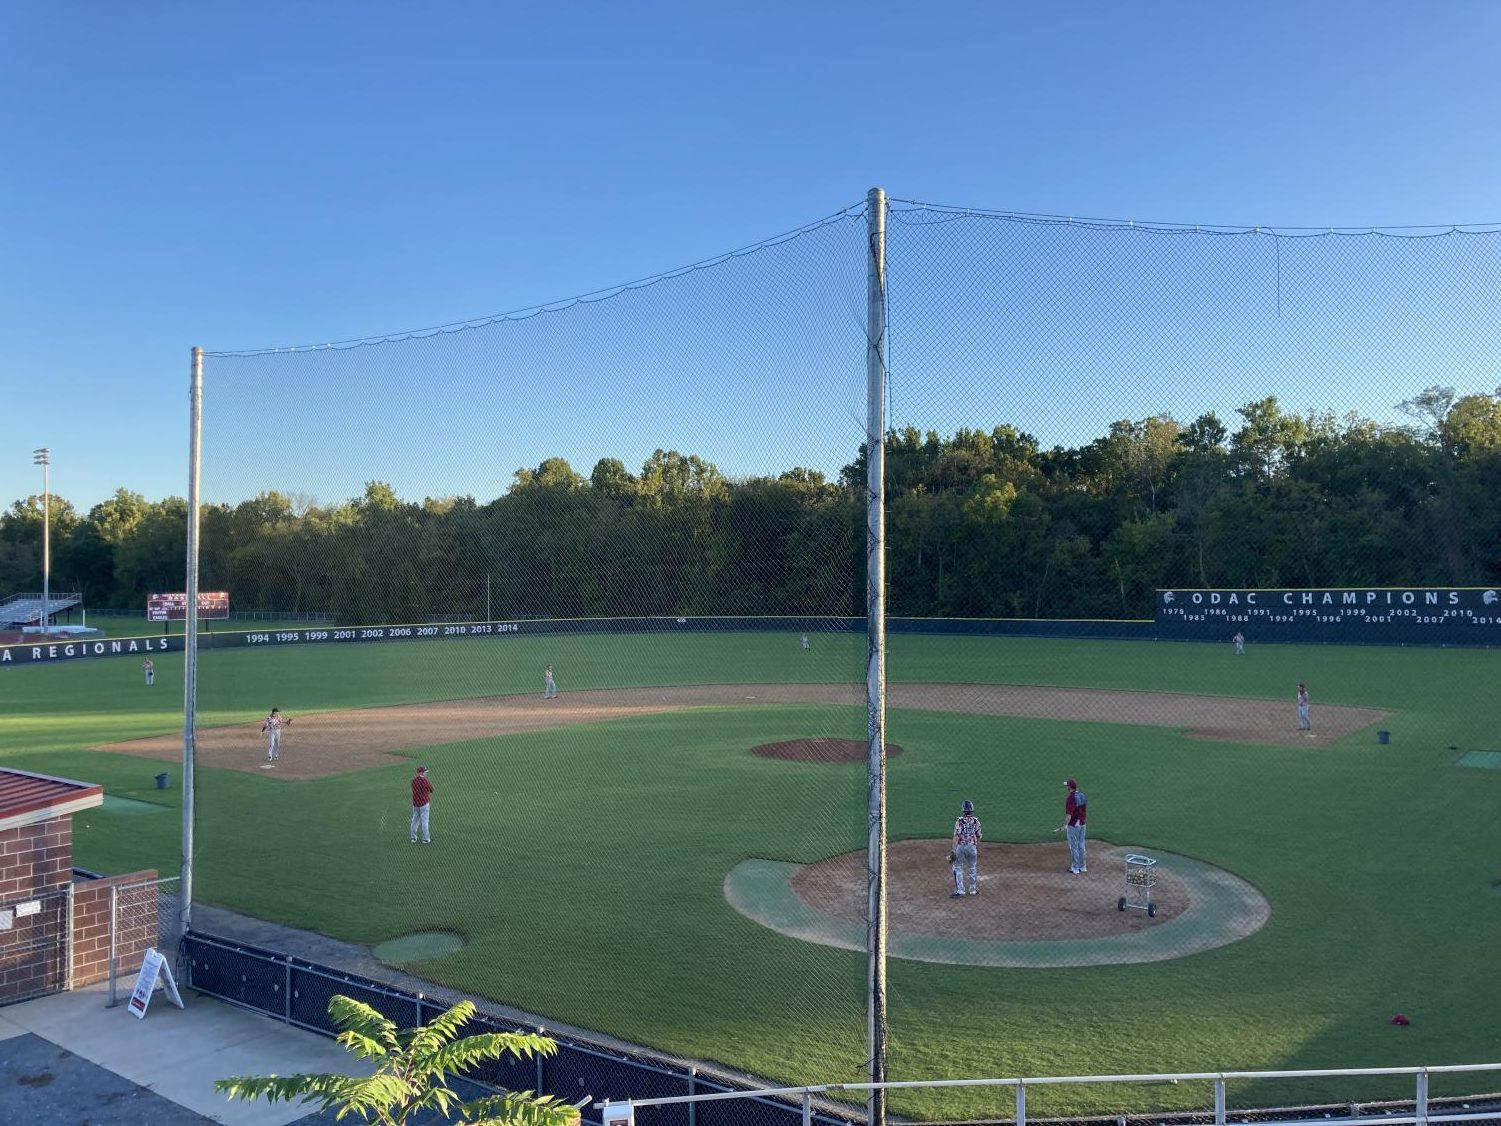 Bridgewater+College+Baseball+has+Officially+Returned+to+the+Field